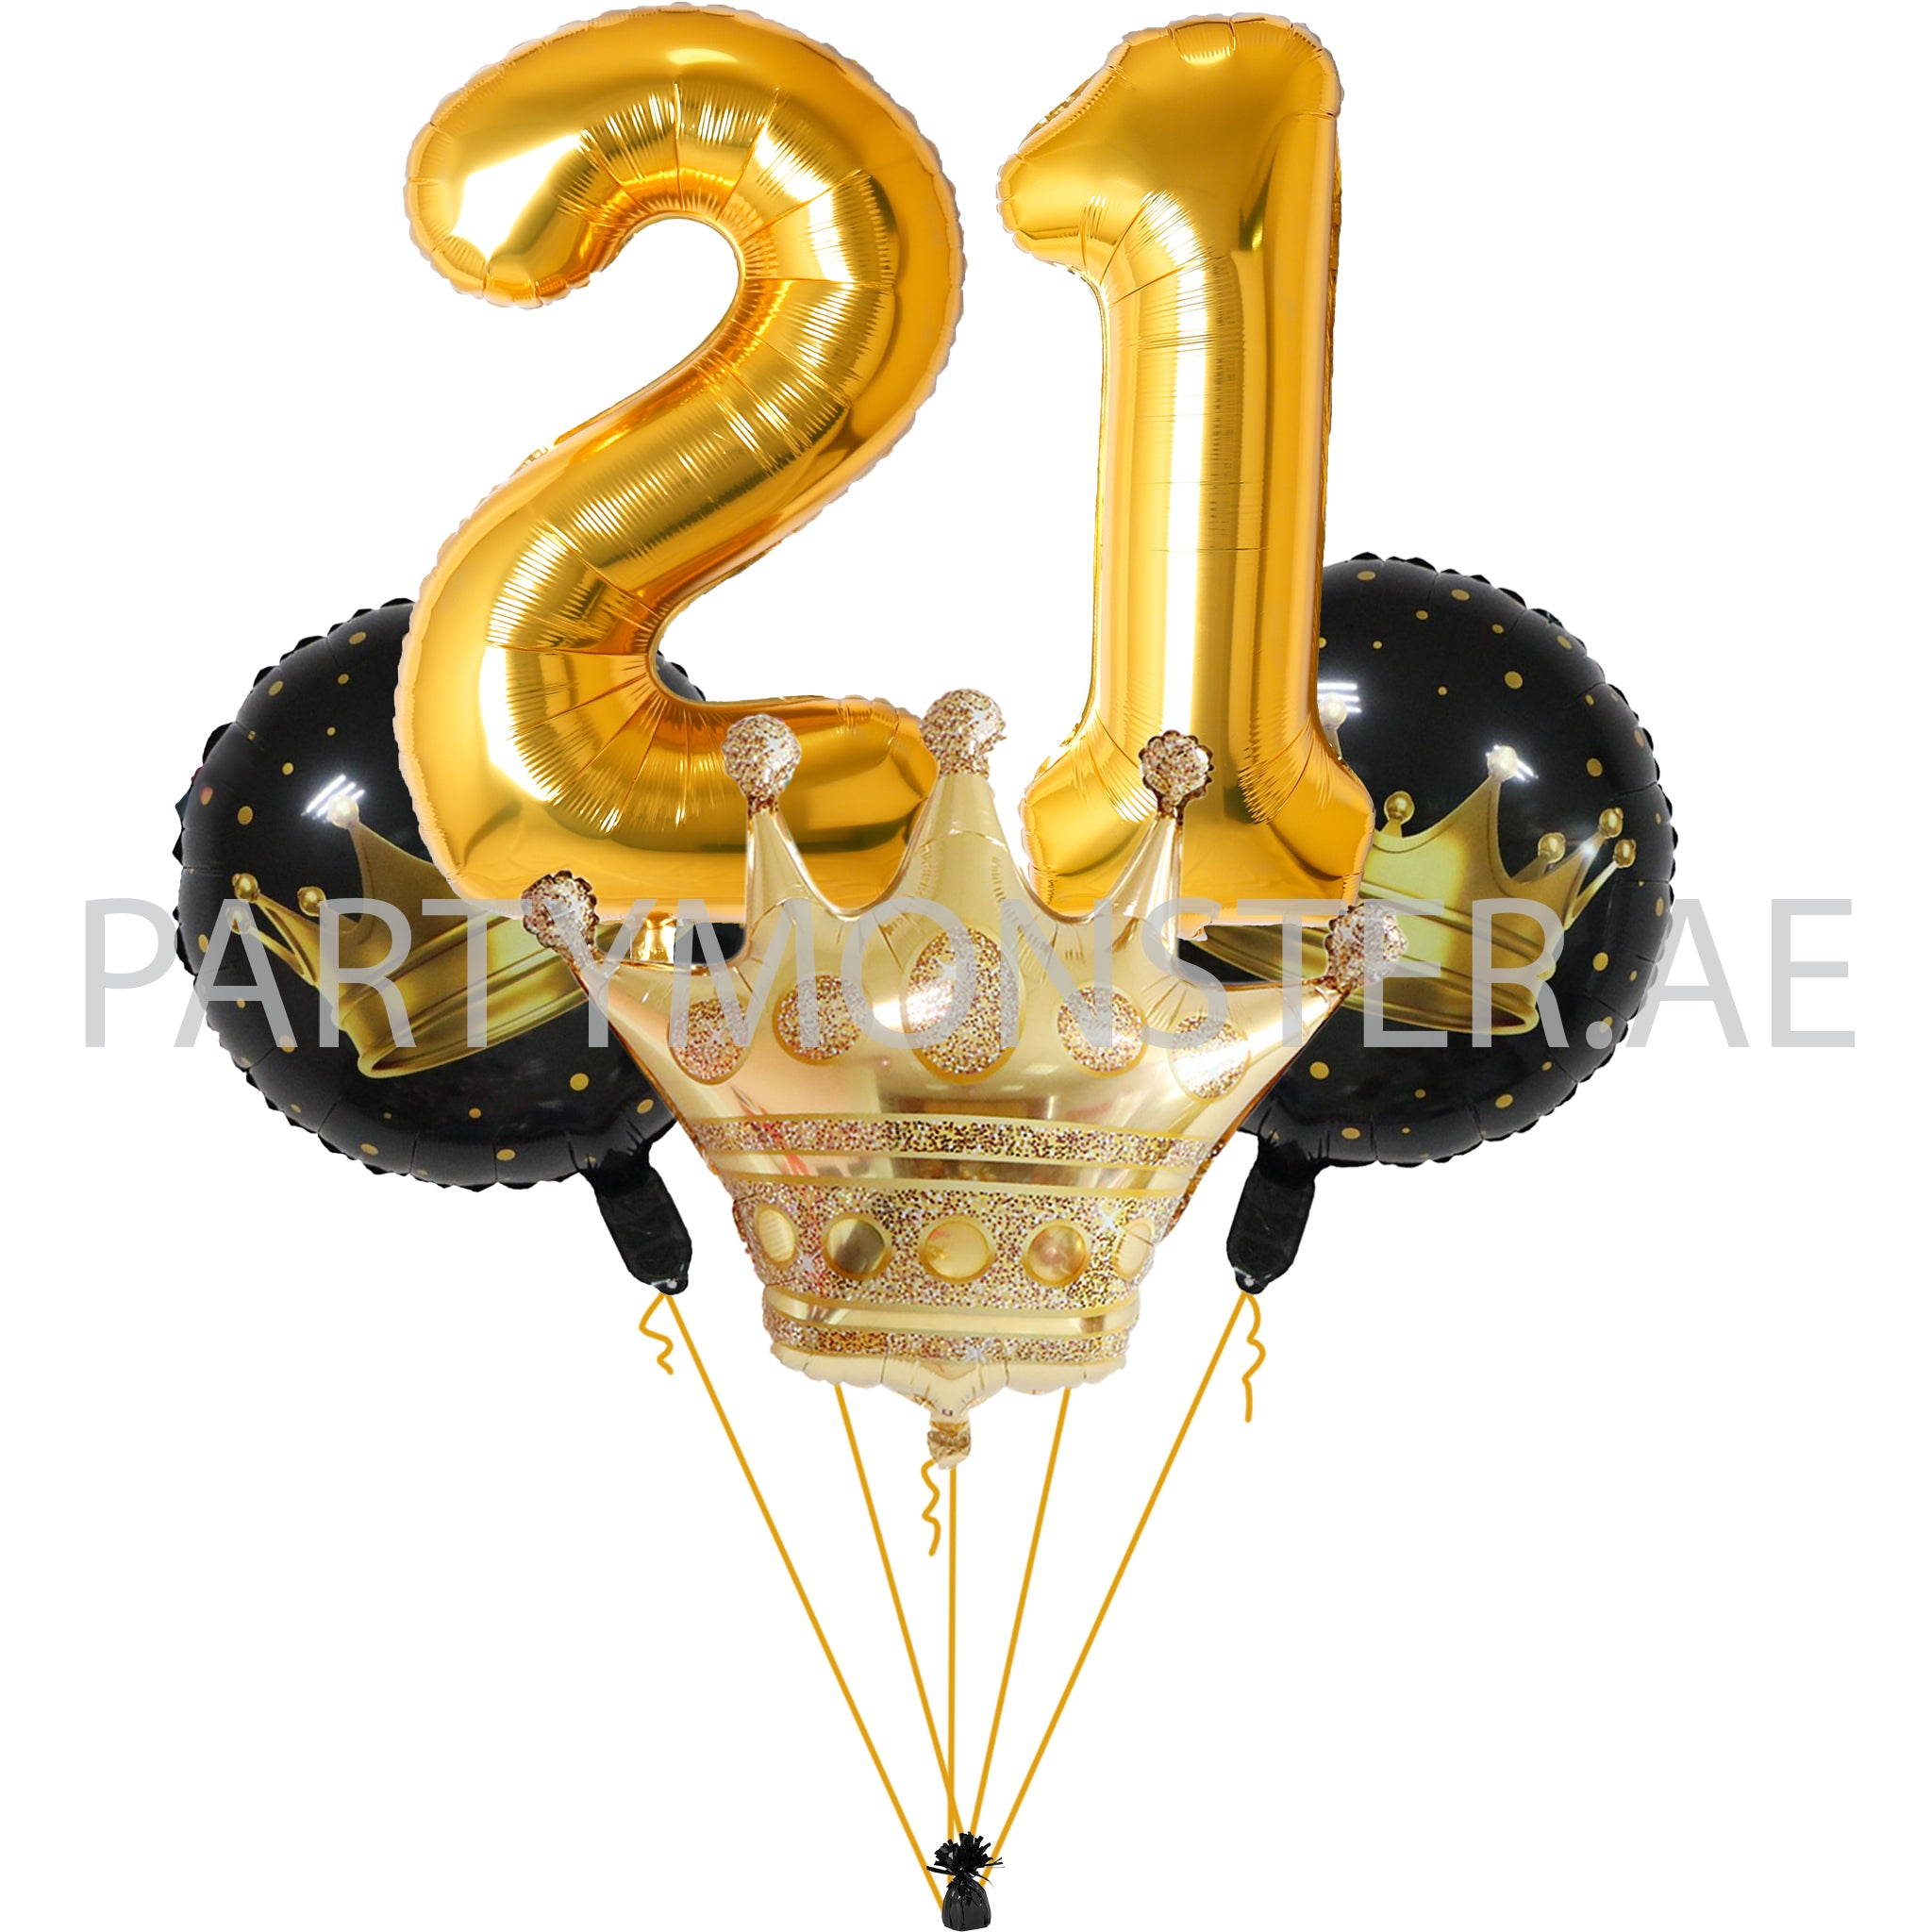 crown themed birthday party balloons delivery in Dubai